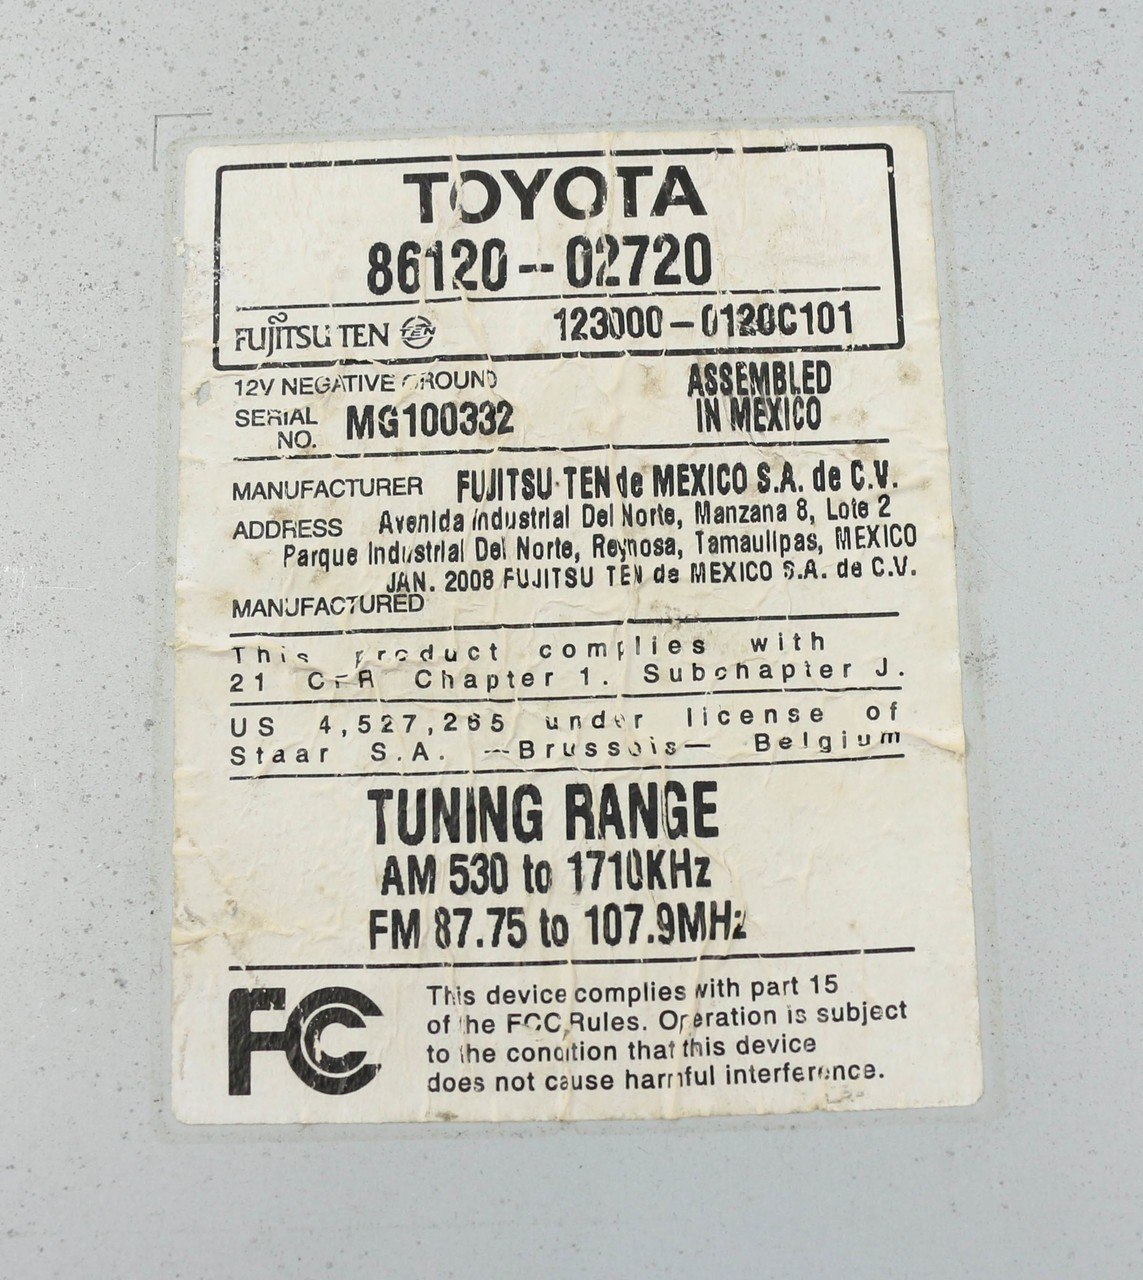 Toyota 86120 0c020 Wiring Diagram Trusted Wiring Diagrams 2007 Camry Fuse  Box Diagram Toyota 86120 52530 Wiring Diagram